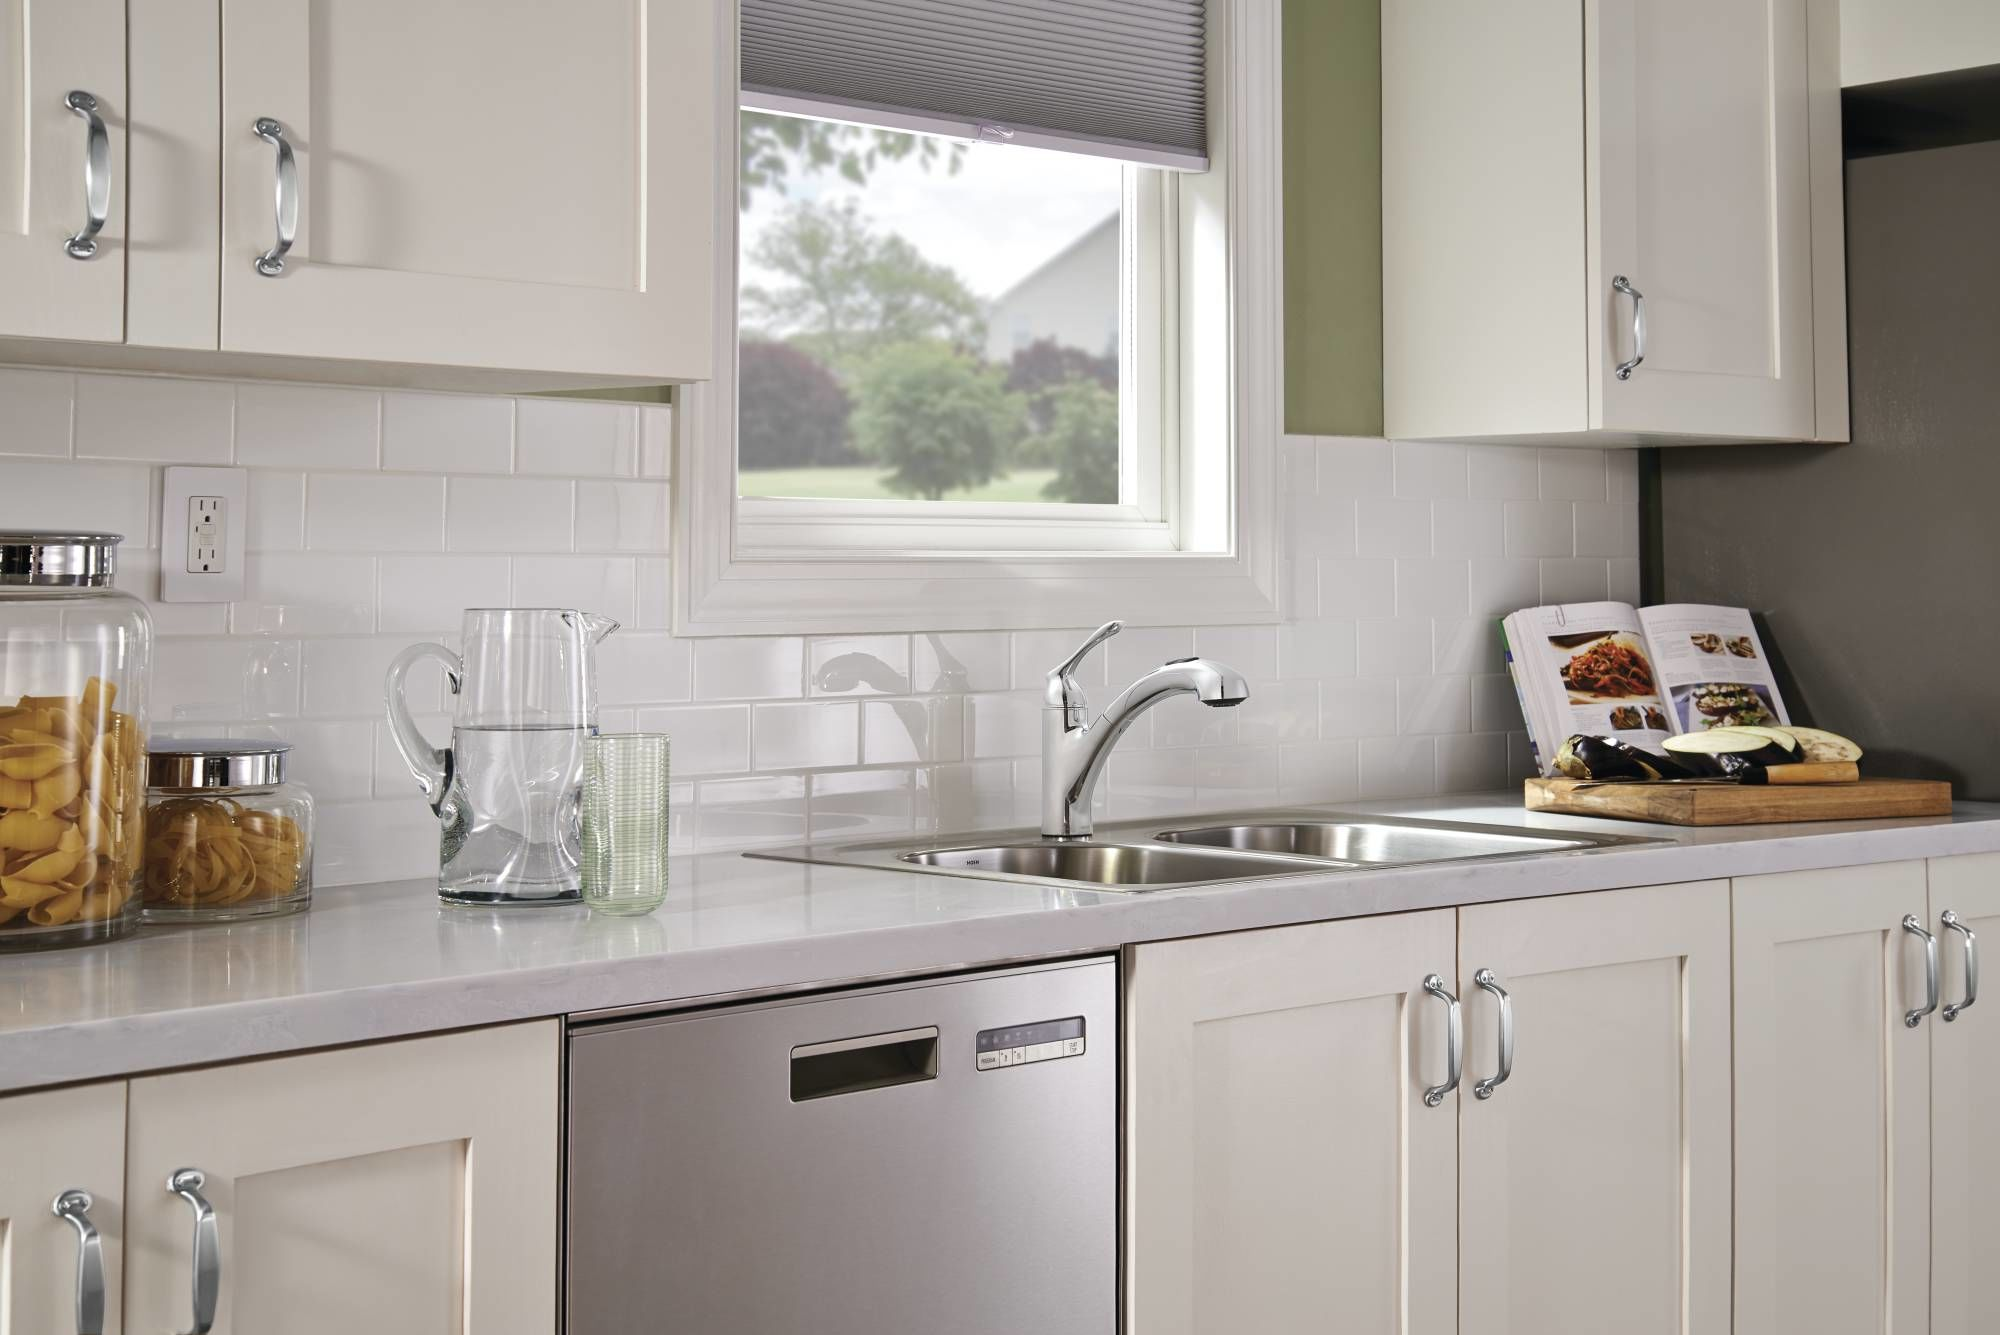 Moen 87017V Ivory Pullout Spray Kitchen Faucet from the Banbury ...